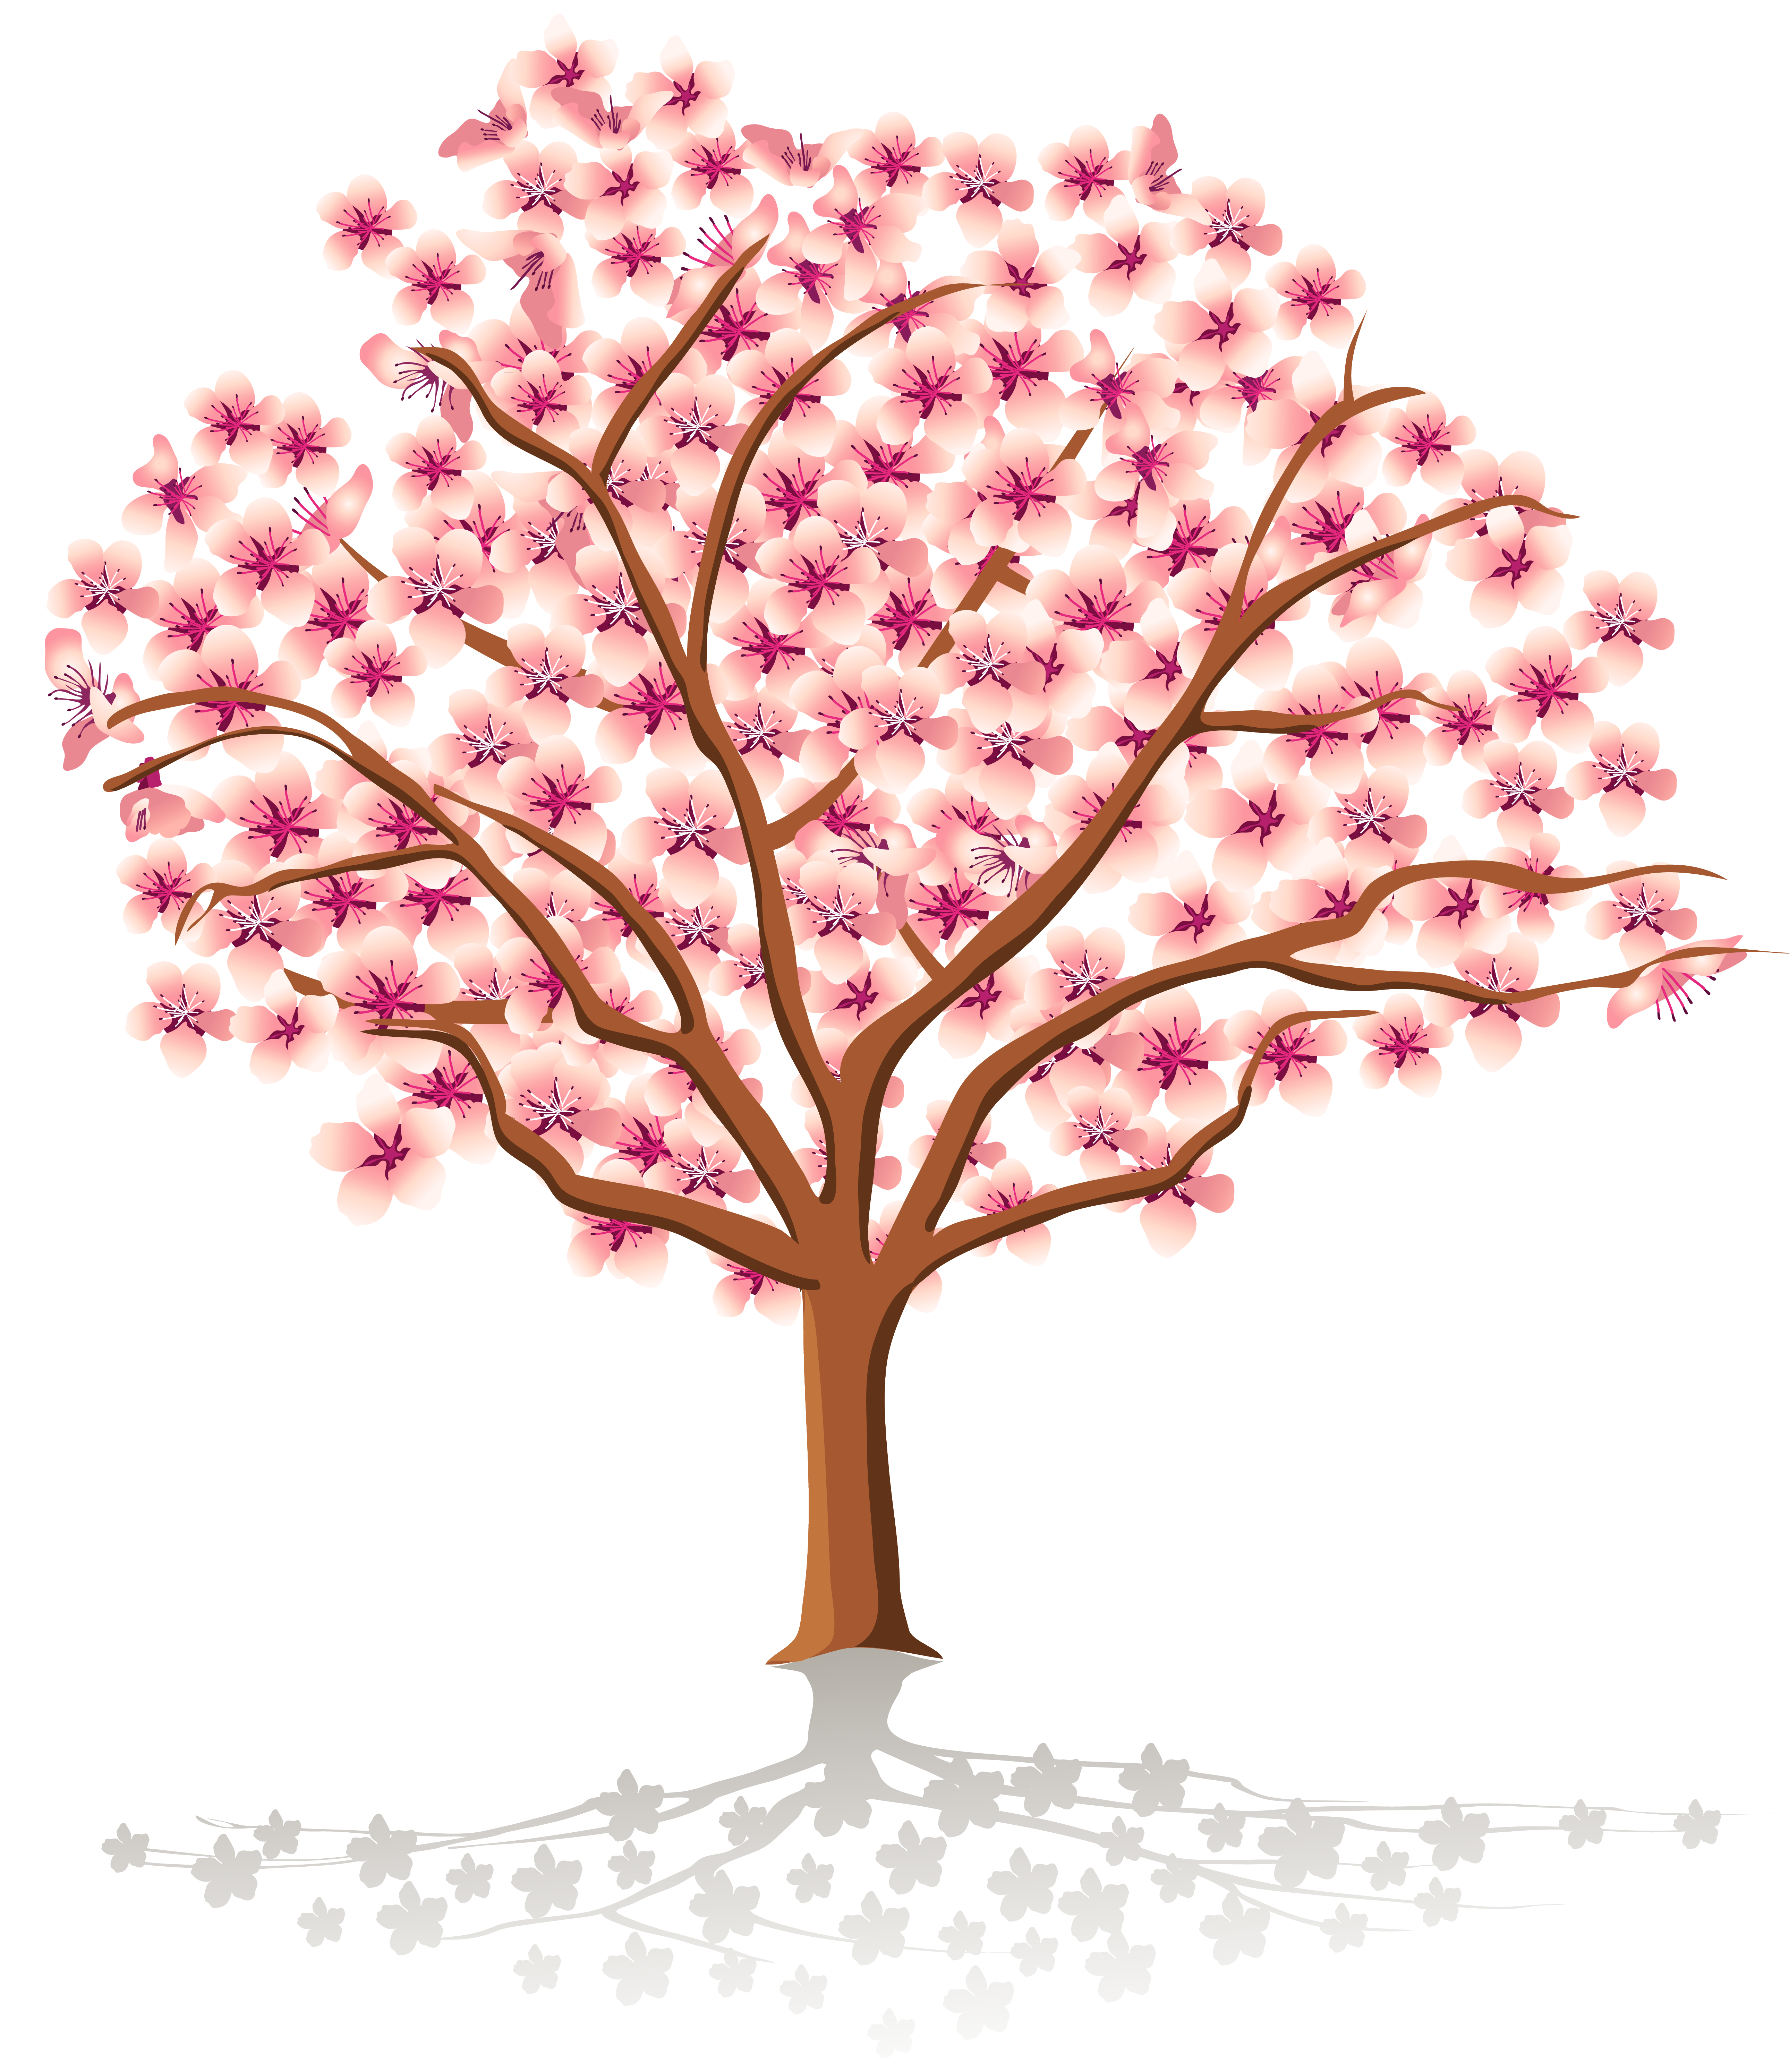 Spring tree png. Transparent clipart gallery yopriceville